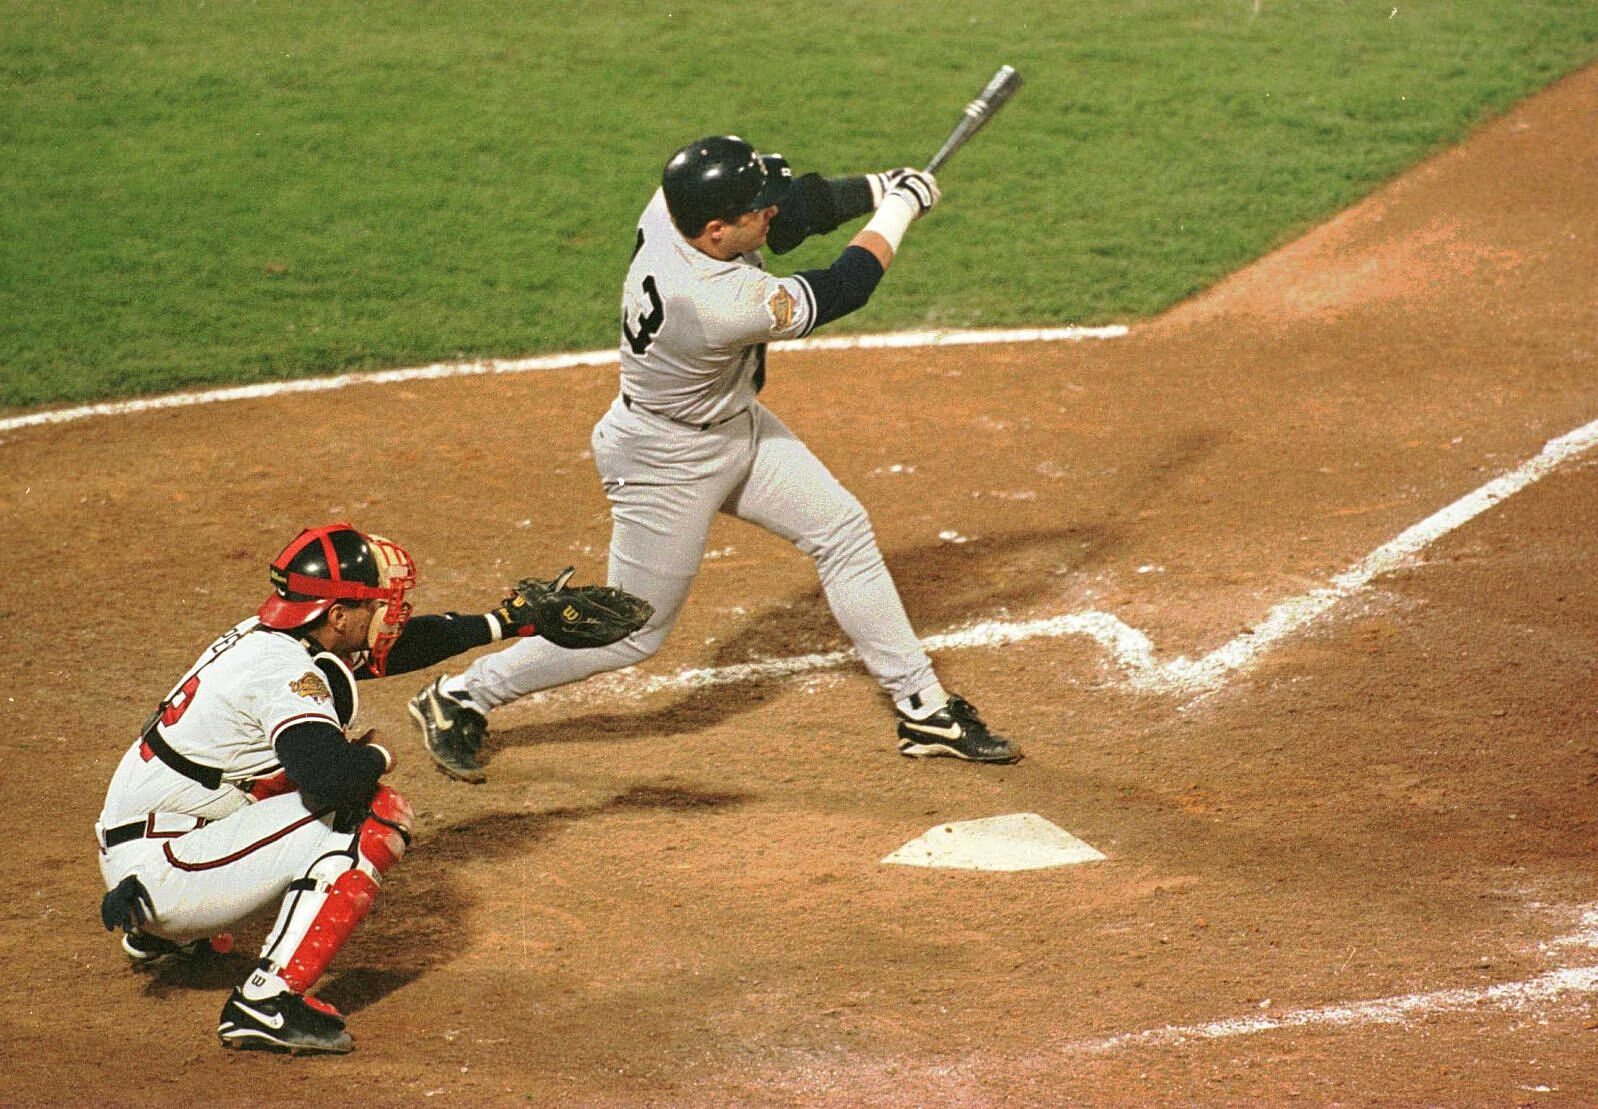 Yankees: Jim Leyritz answers some questions about the '96 team and his career